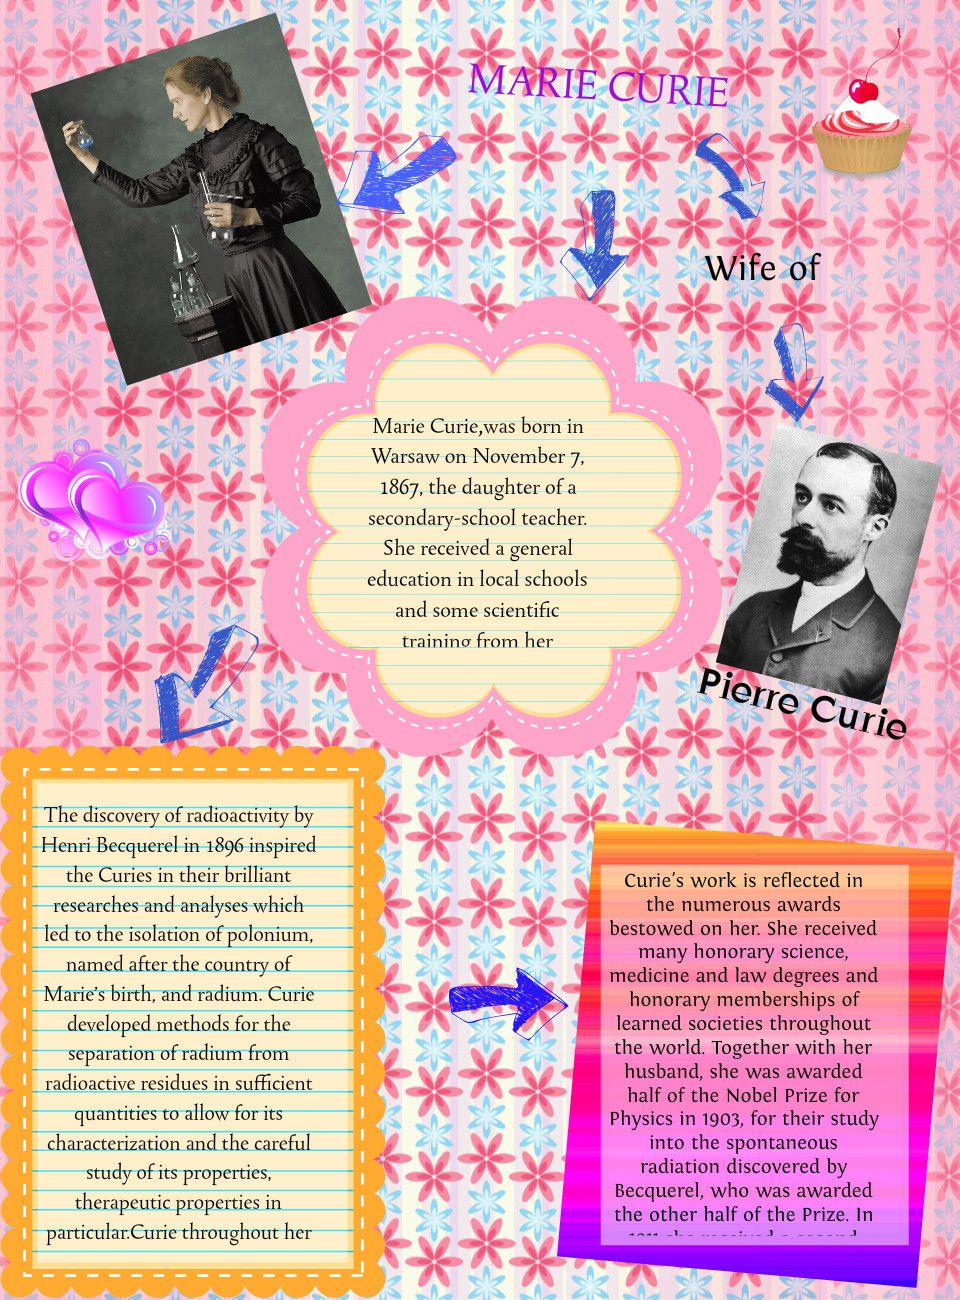 The color red scarlet letter project publish with glogster - Marie Curie